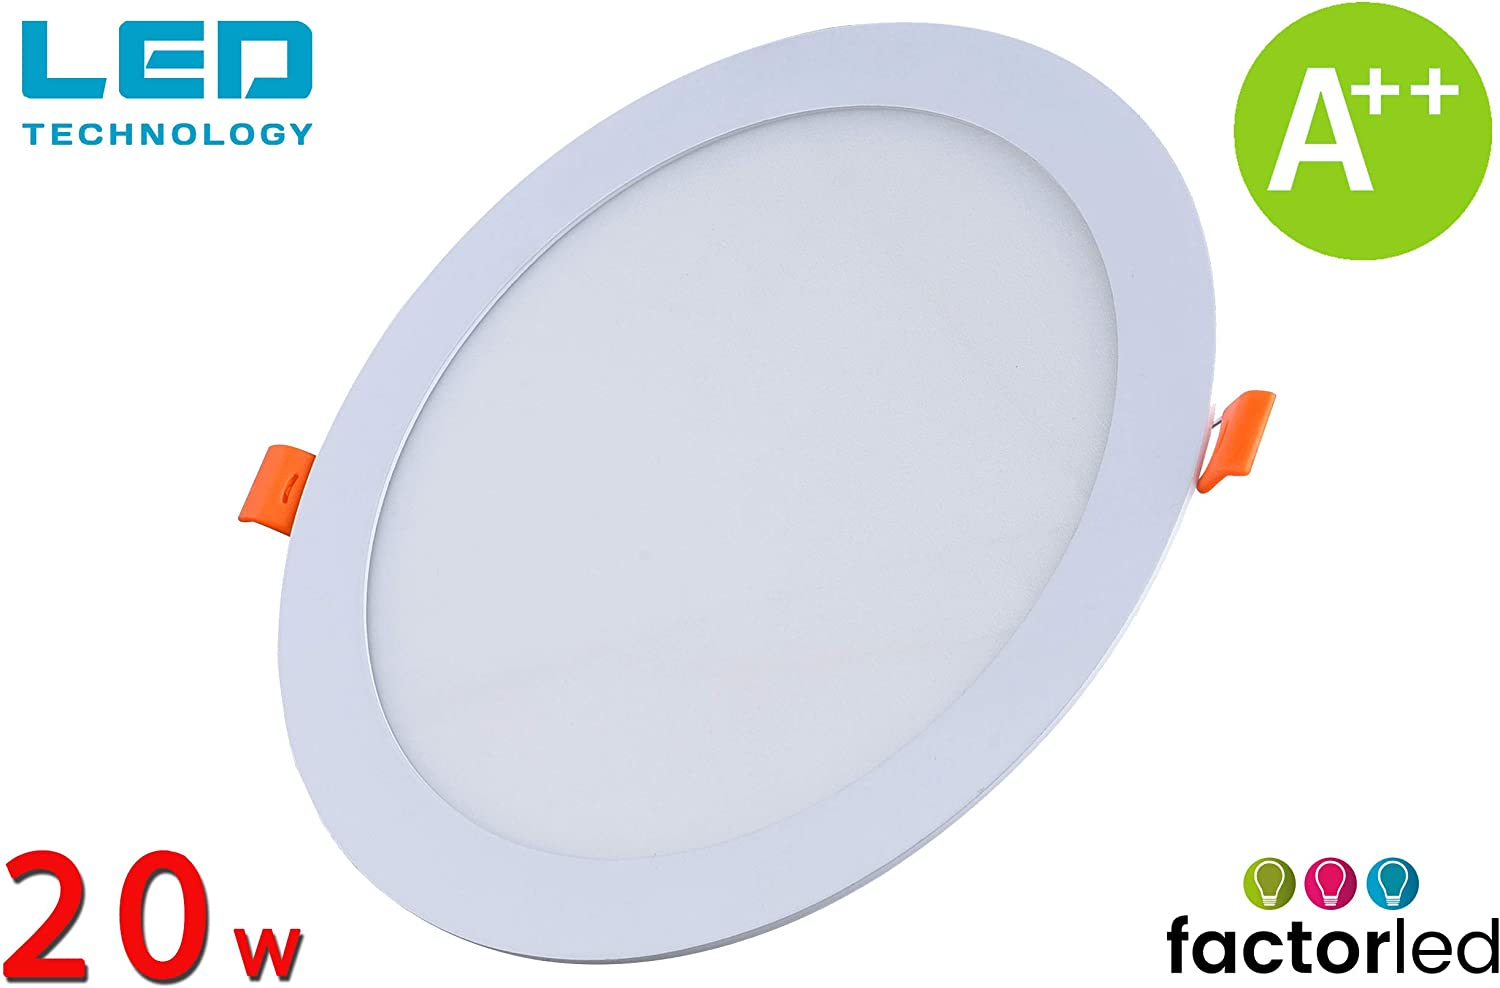 FactorLED ¡OFERTA! Downlight LED 20W Slim, Placa Circular Empotrable, Panel Redondo Extraplano 2400 lúmenes, Corte techo Φ205mm, [Clase de eficiencia energética A++] (Luz Fría (6000K))